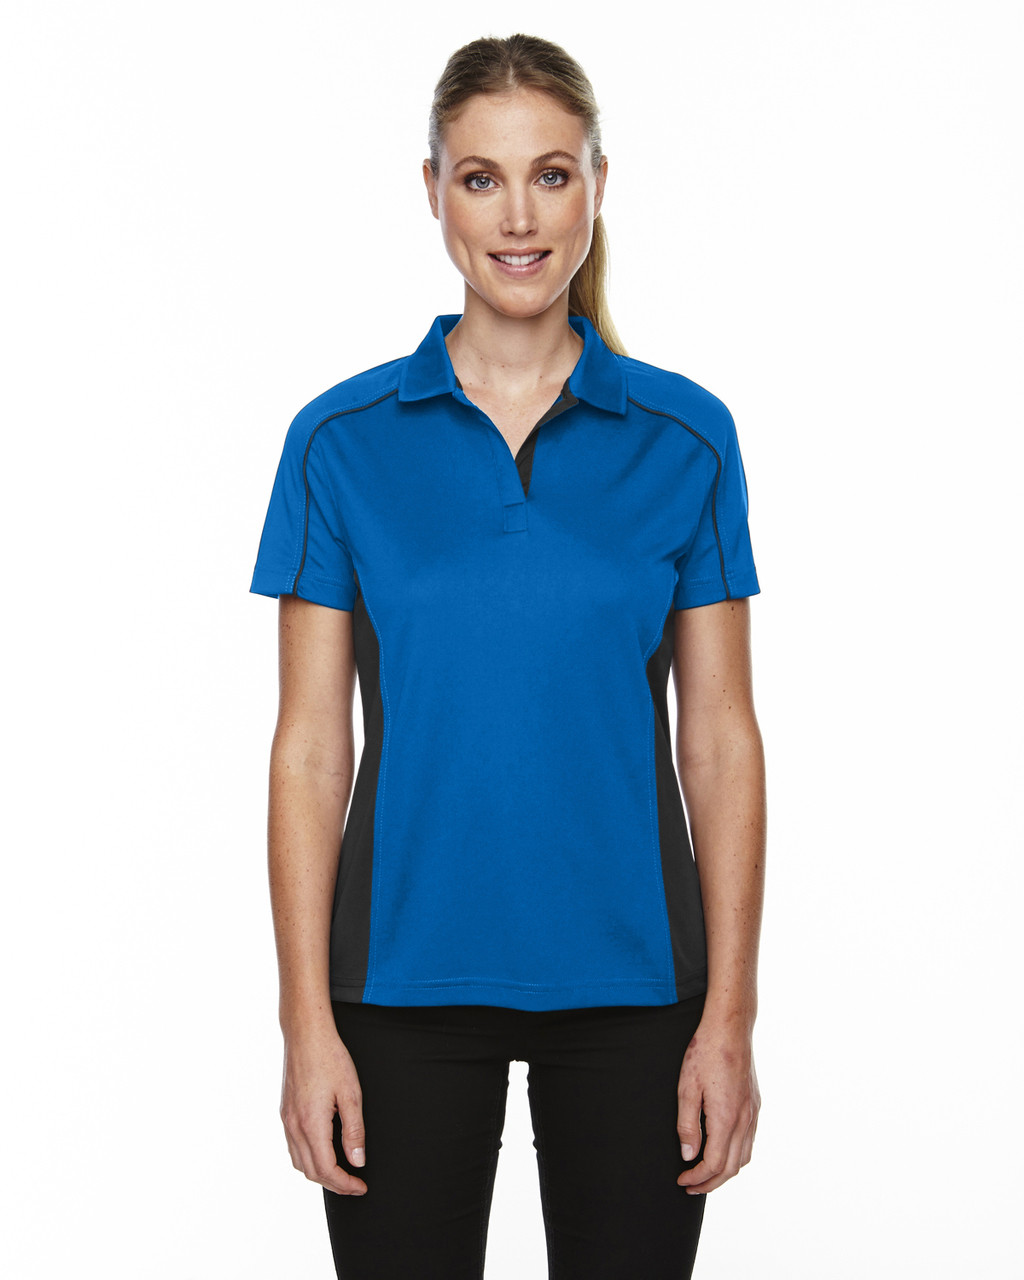 True Royal - 75113 Ash City - Extreme Eperformance Ladies' Fuse Plus Colourblock Polo Shirt | Blankclothing.ca